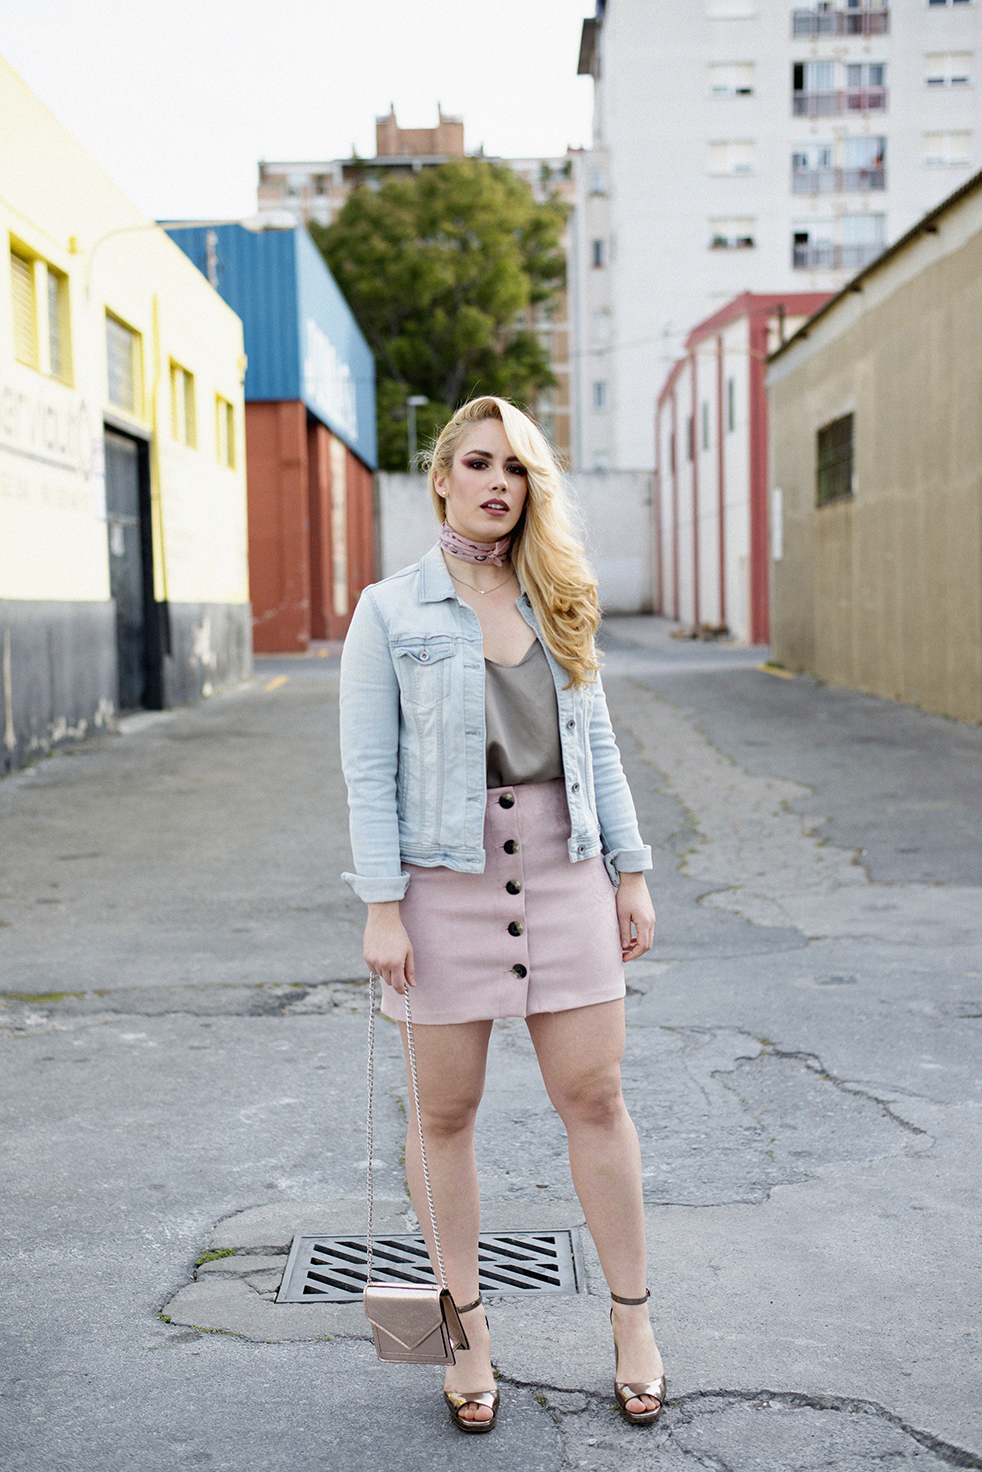 Patripaan with Bershka pink buttoned skirt look.